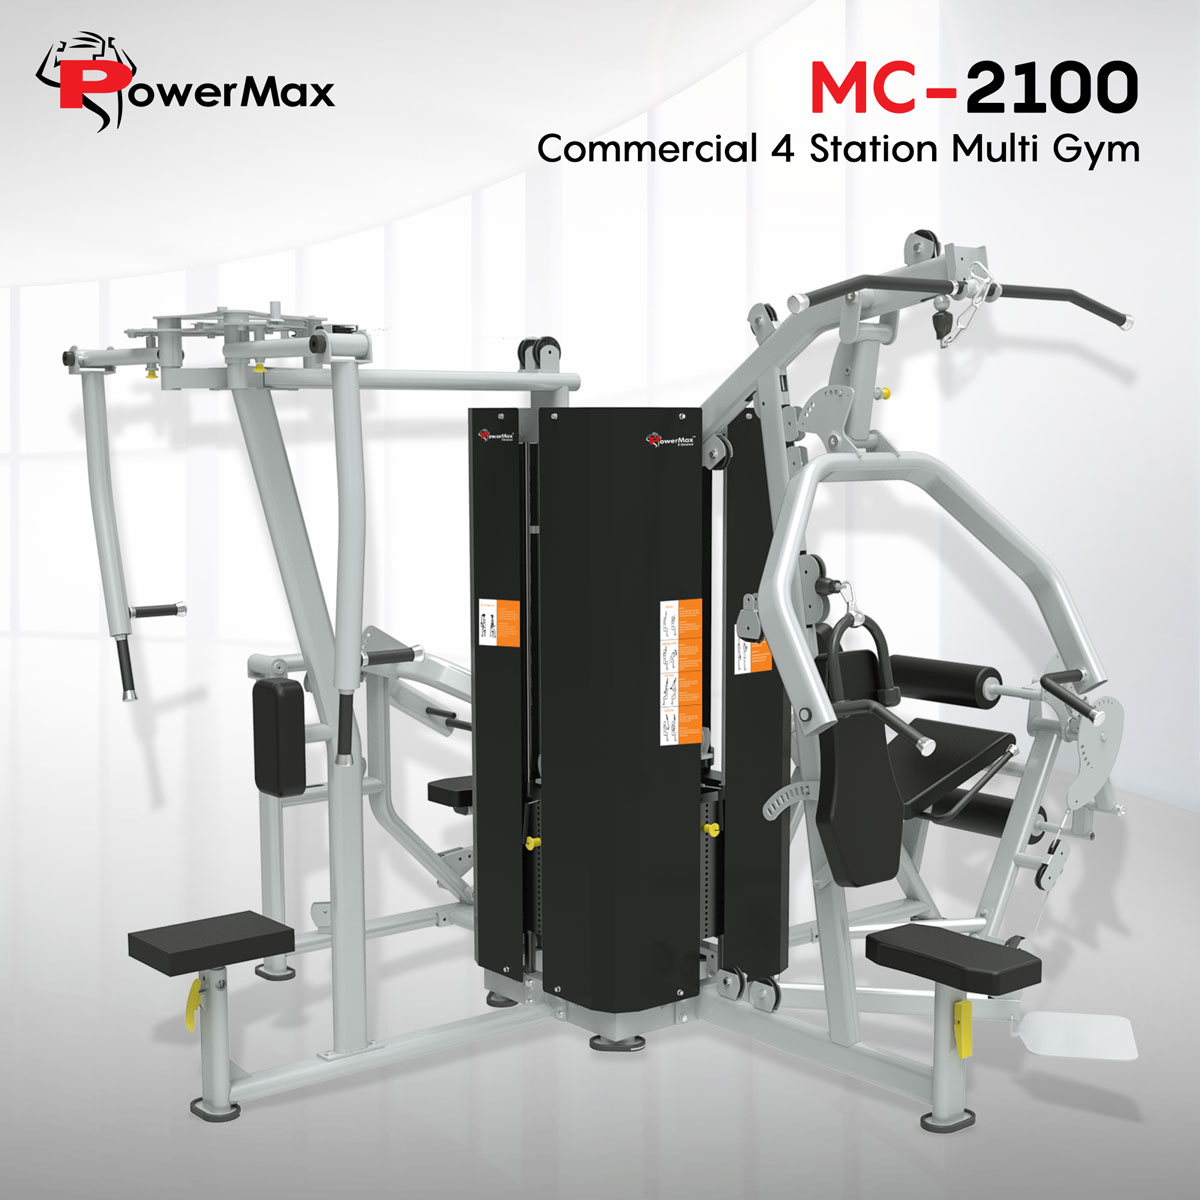 MC-2100 Commercial 4 Station Multi Gym